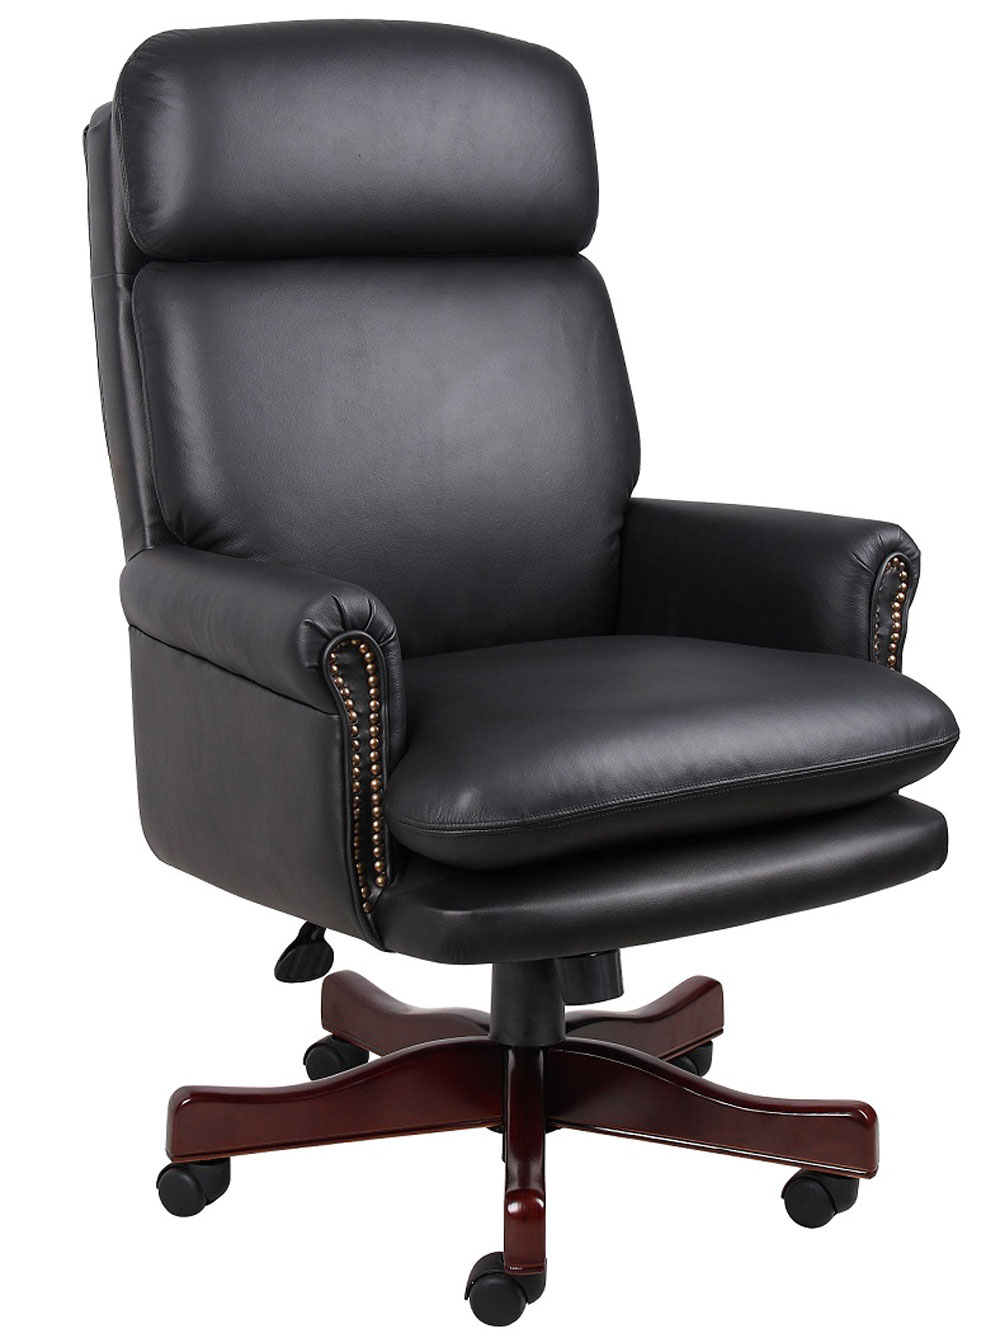 Executive Office Furniture: Traditional Office Chair